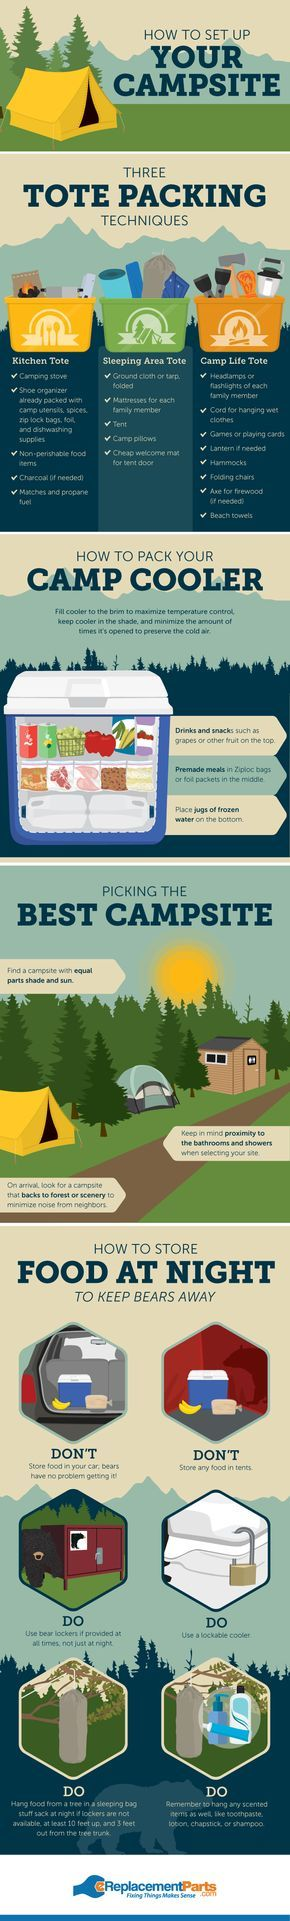 25+ best ideas about Campsite on Pinterest